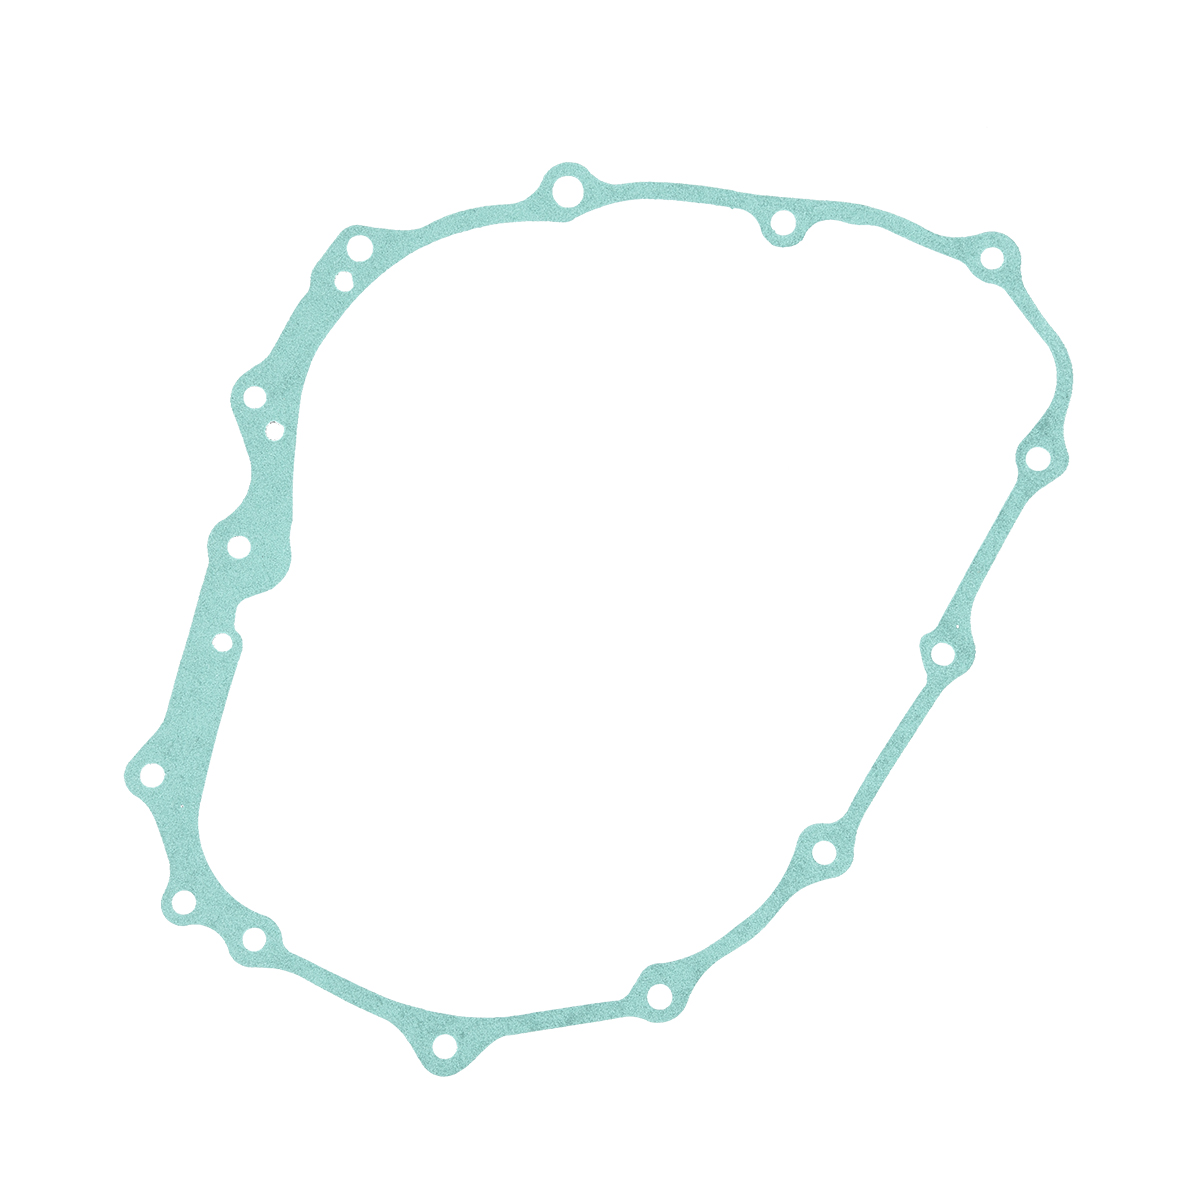 Replacement Clutch Cover Gasket for Honda TRX400EX TRX400 EX Sportrax 1999-2008